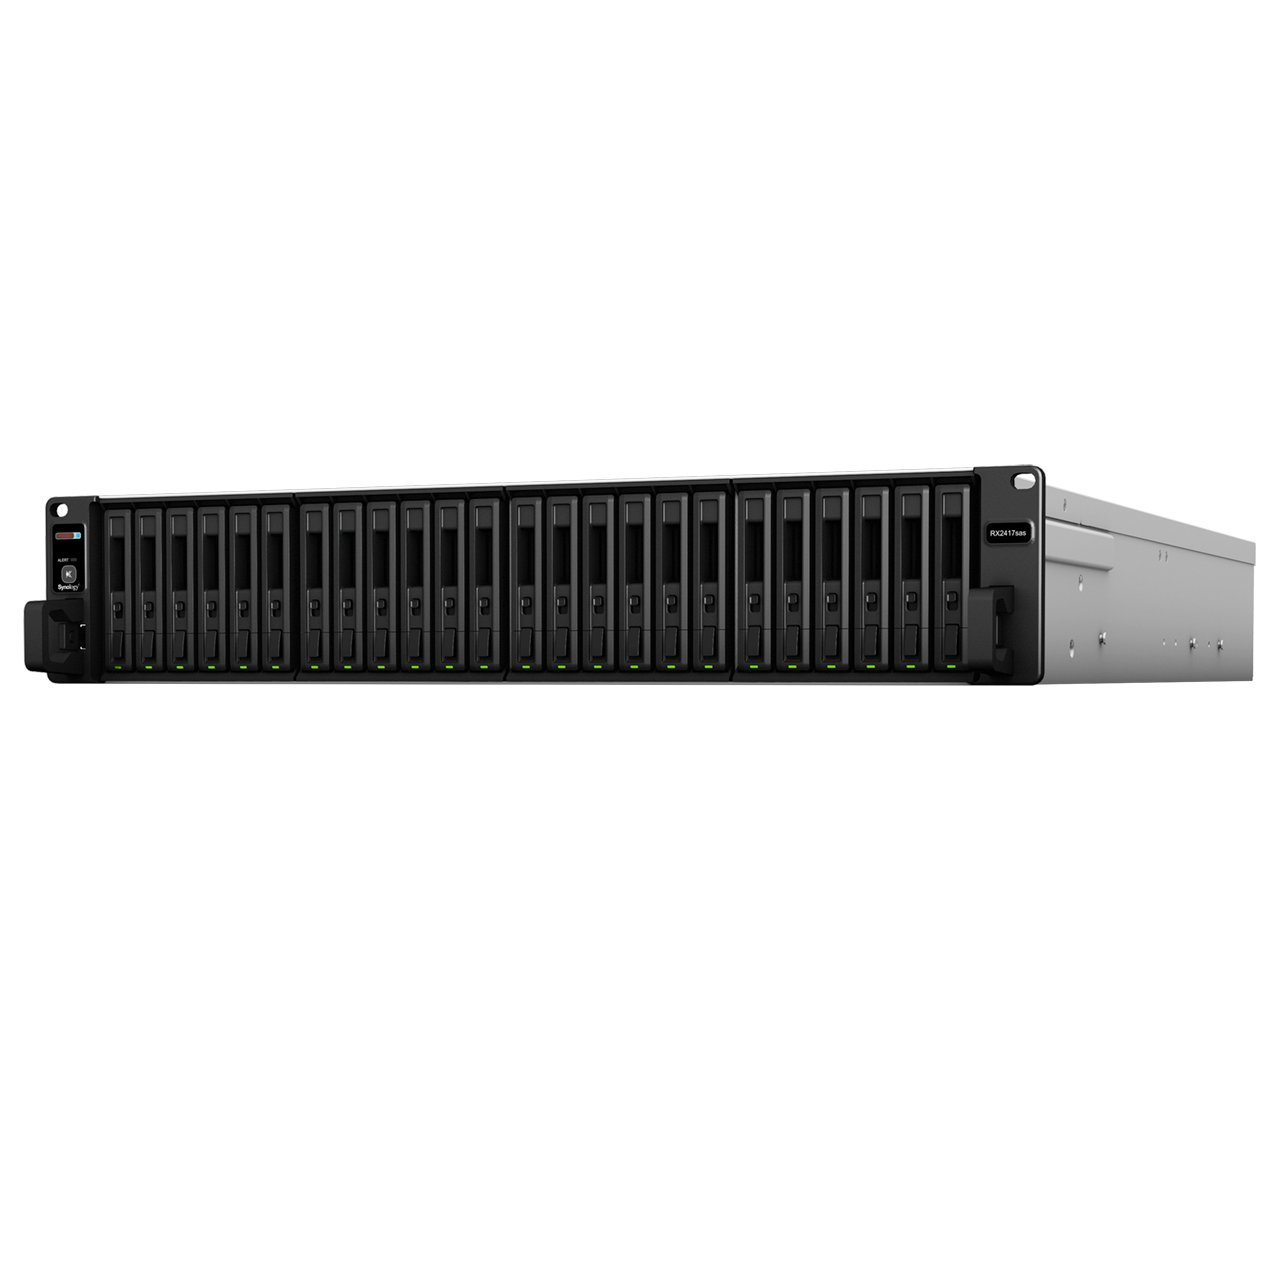 Synology 24bay Expansion RX2417sas For Flash Station/Rack Station (Diskless)